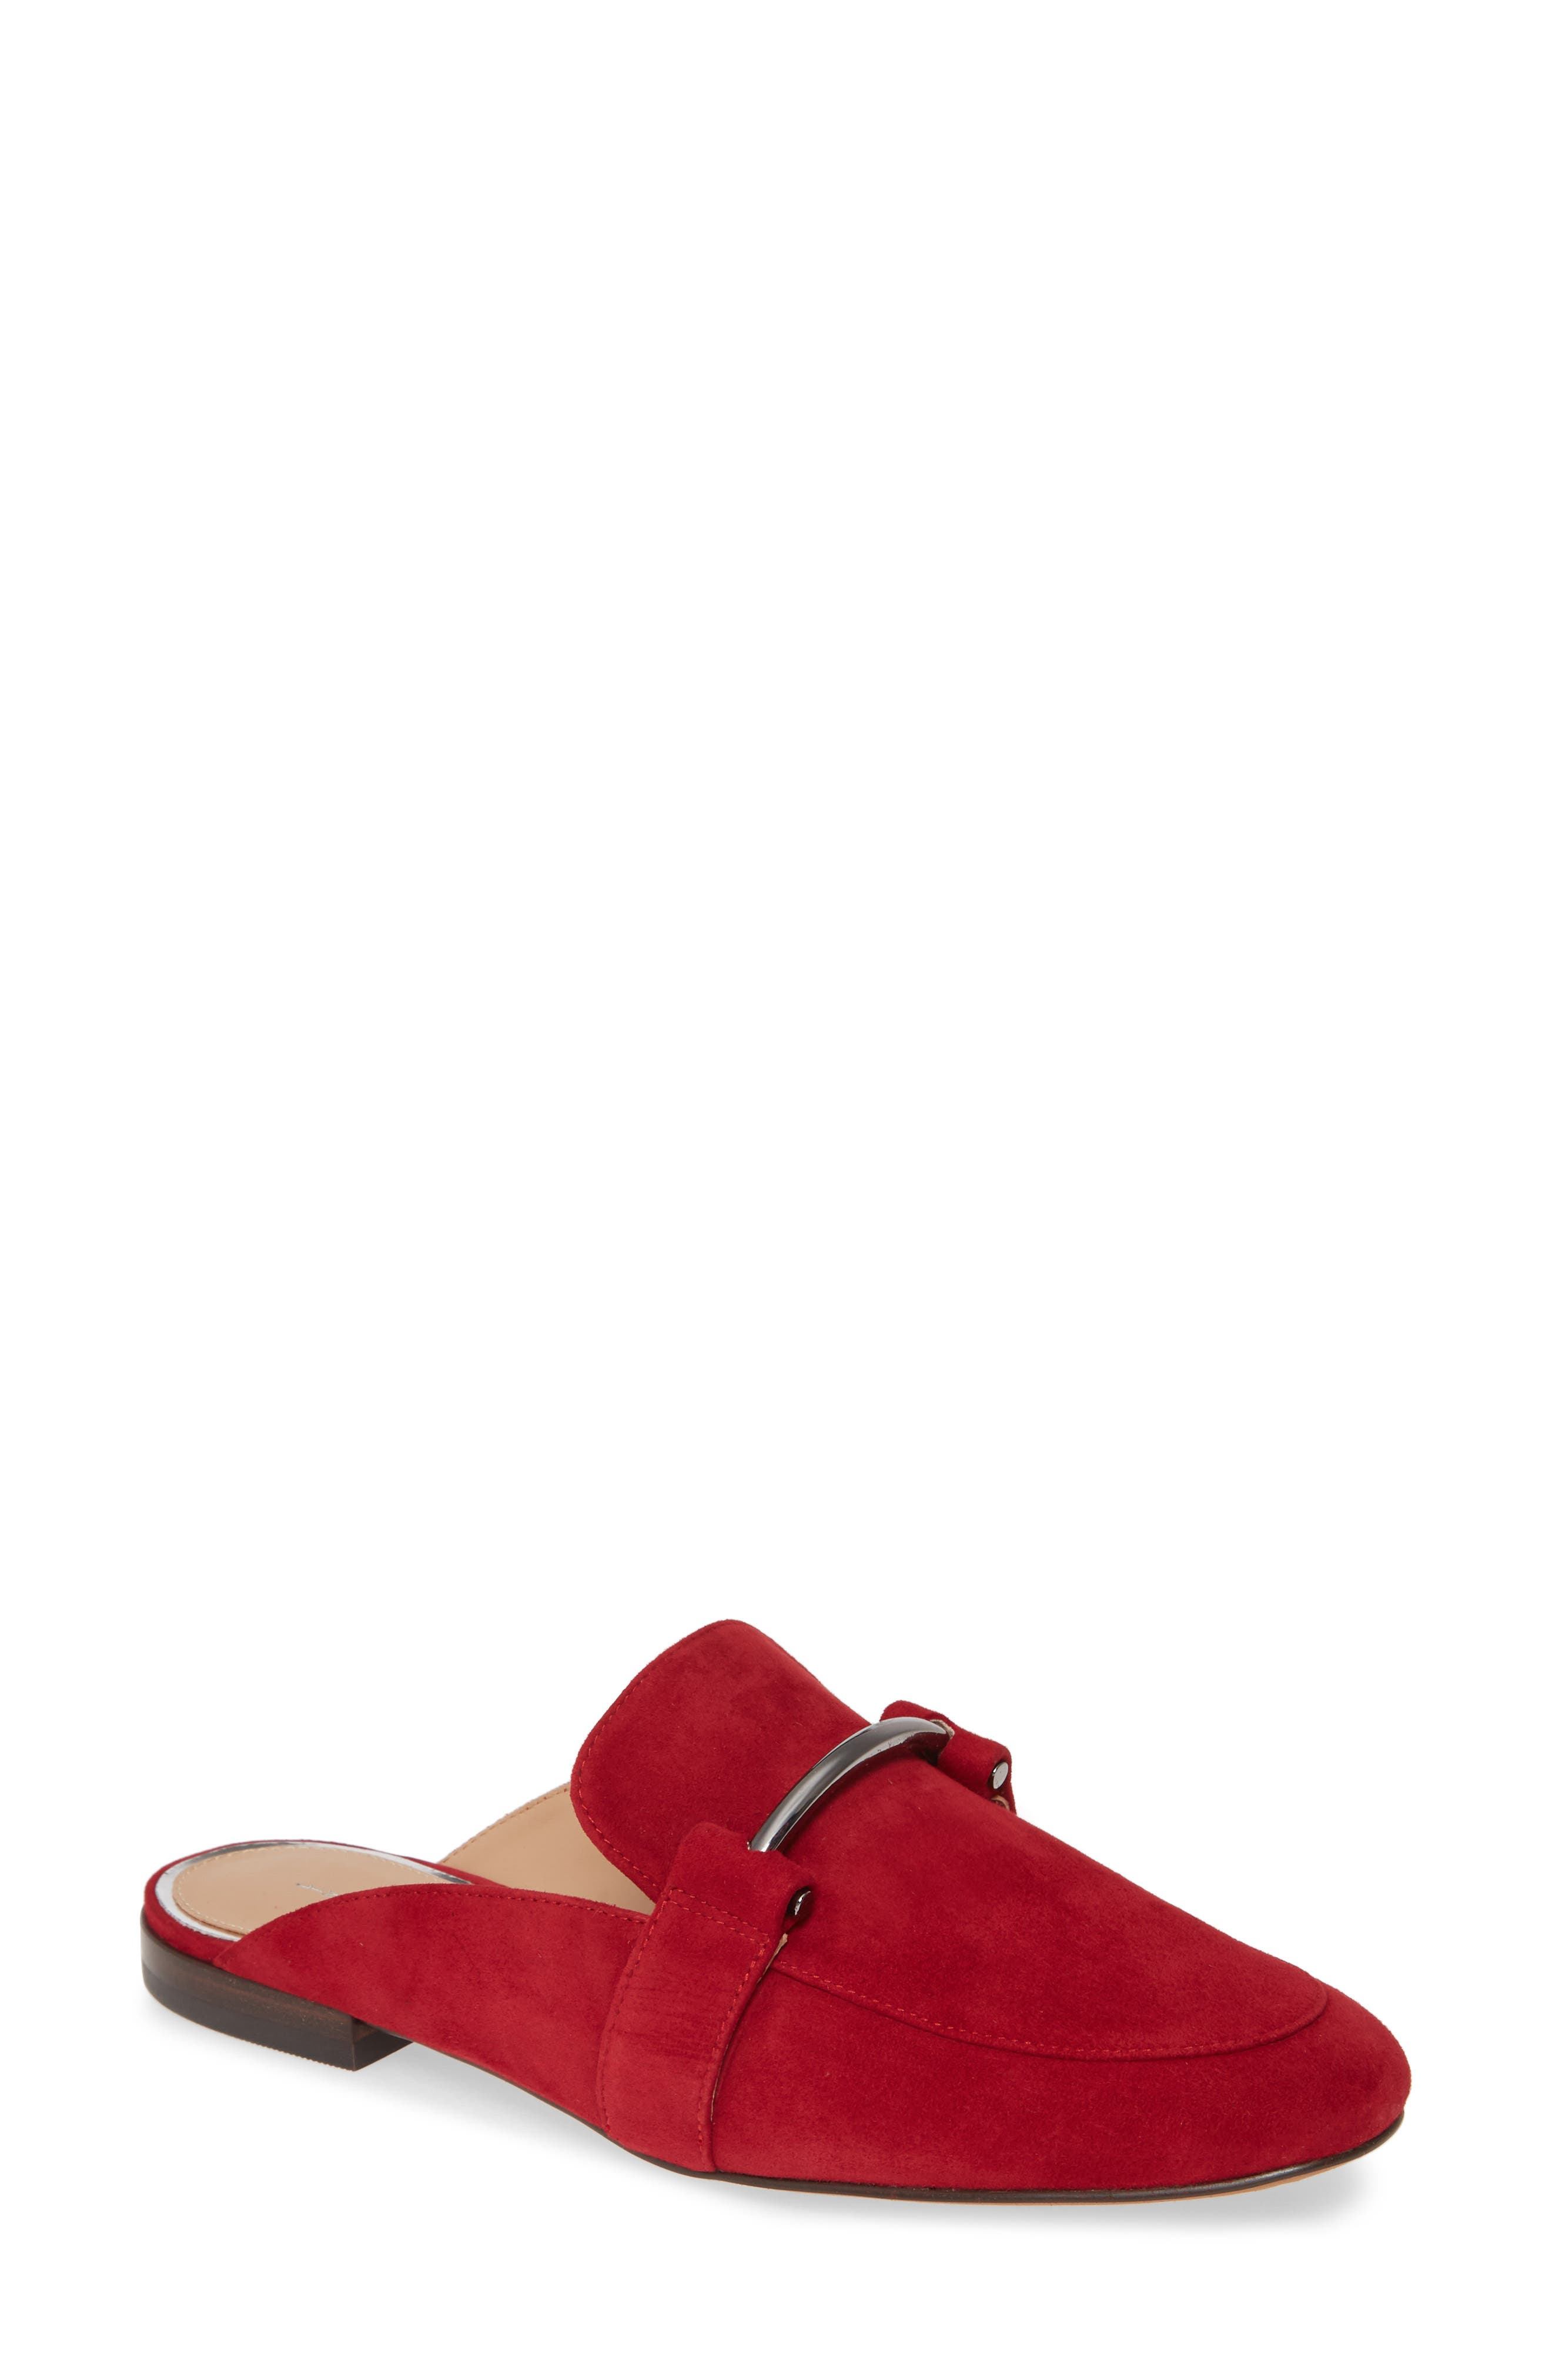 Linea Paolo Annette Loafer Mule- Red